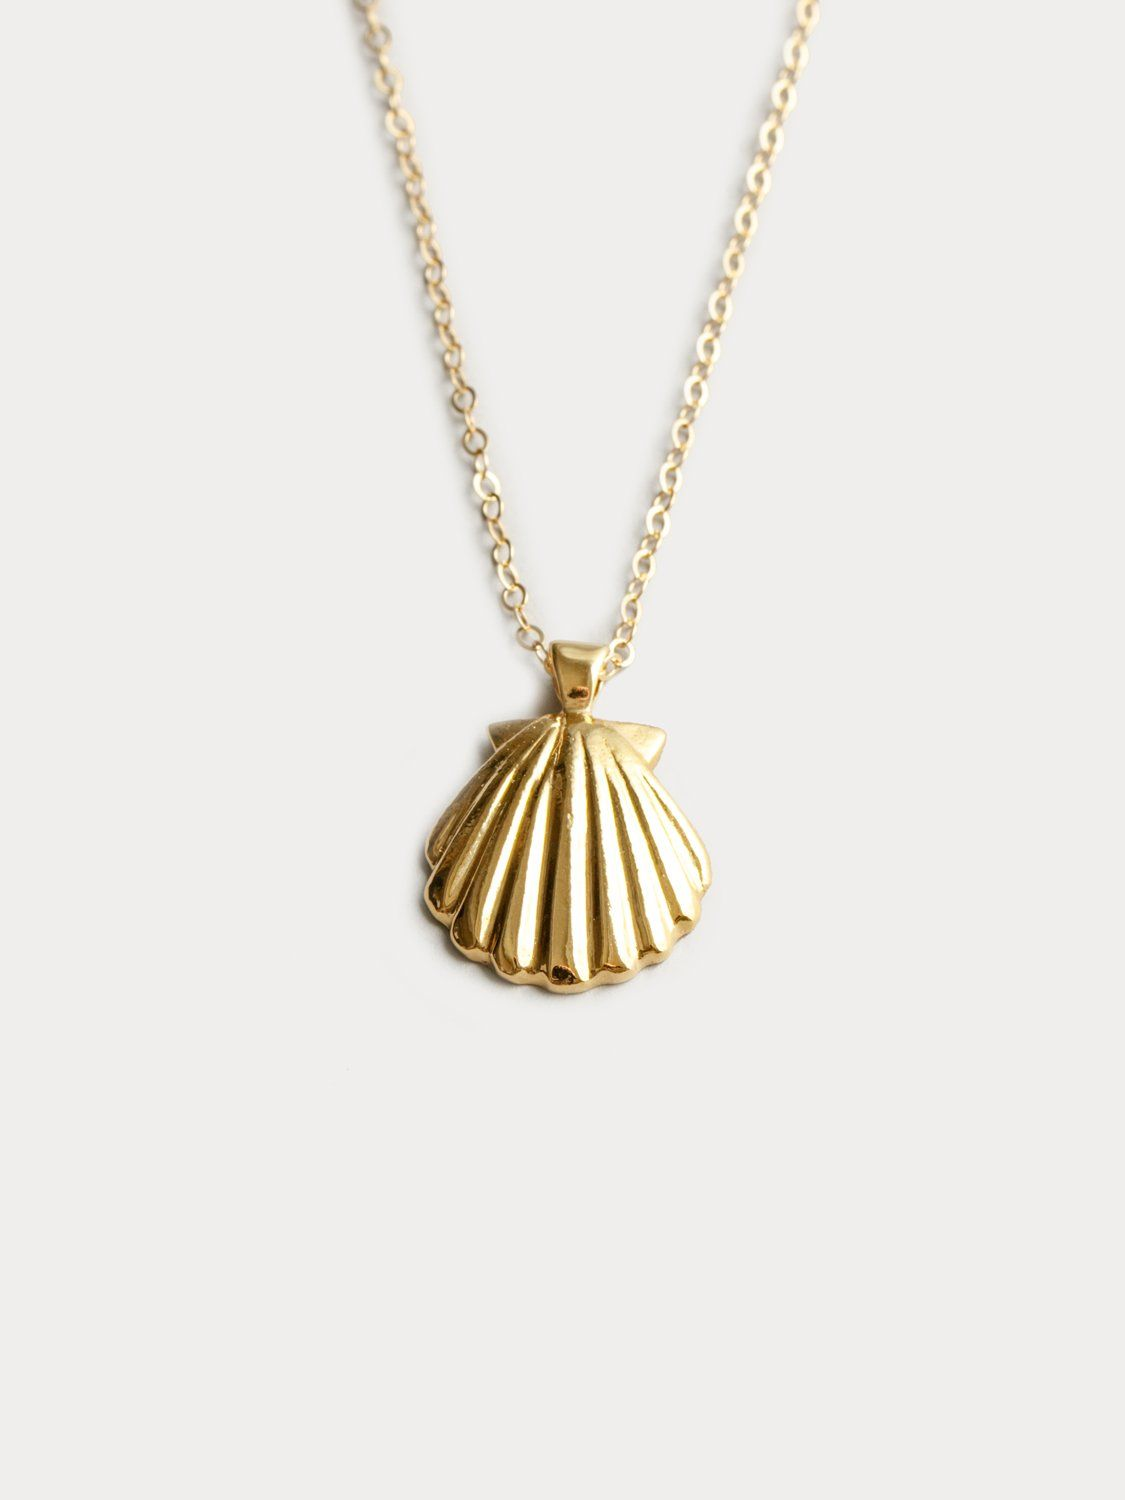 Jewels Obsession Conch Shell Necklace 14K Rose Gold-plated 925 Silver Conch Shell Pendant with 18 Necklace